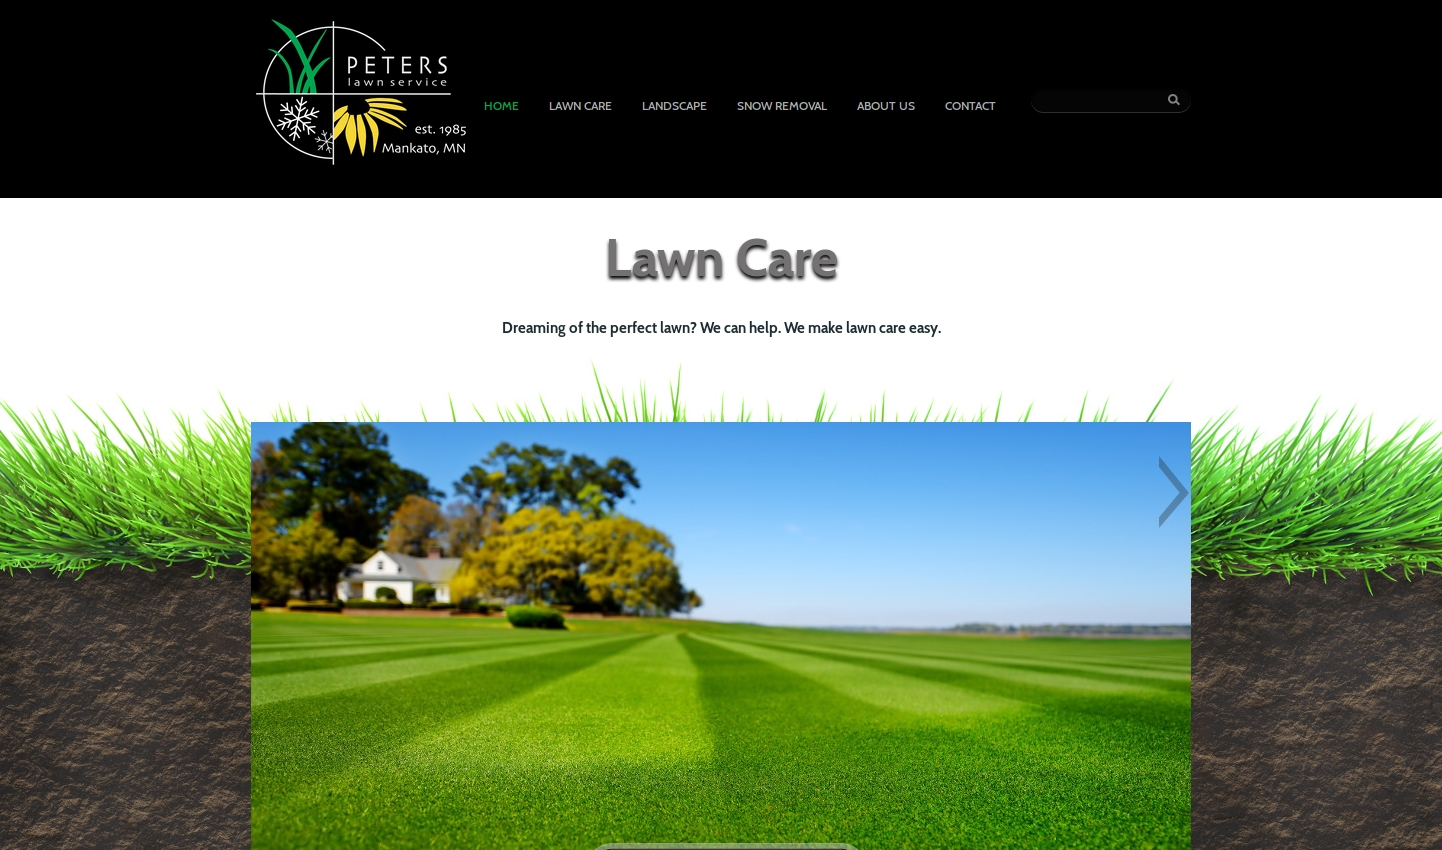 Peters Lawn Service